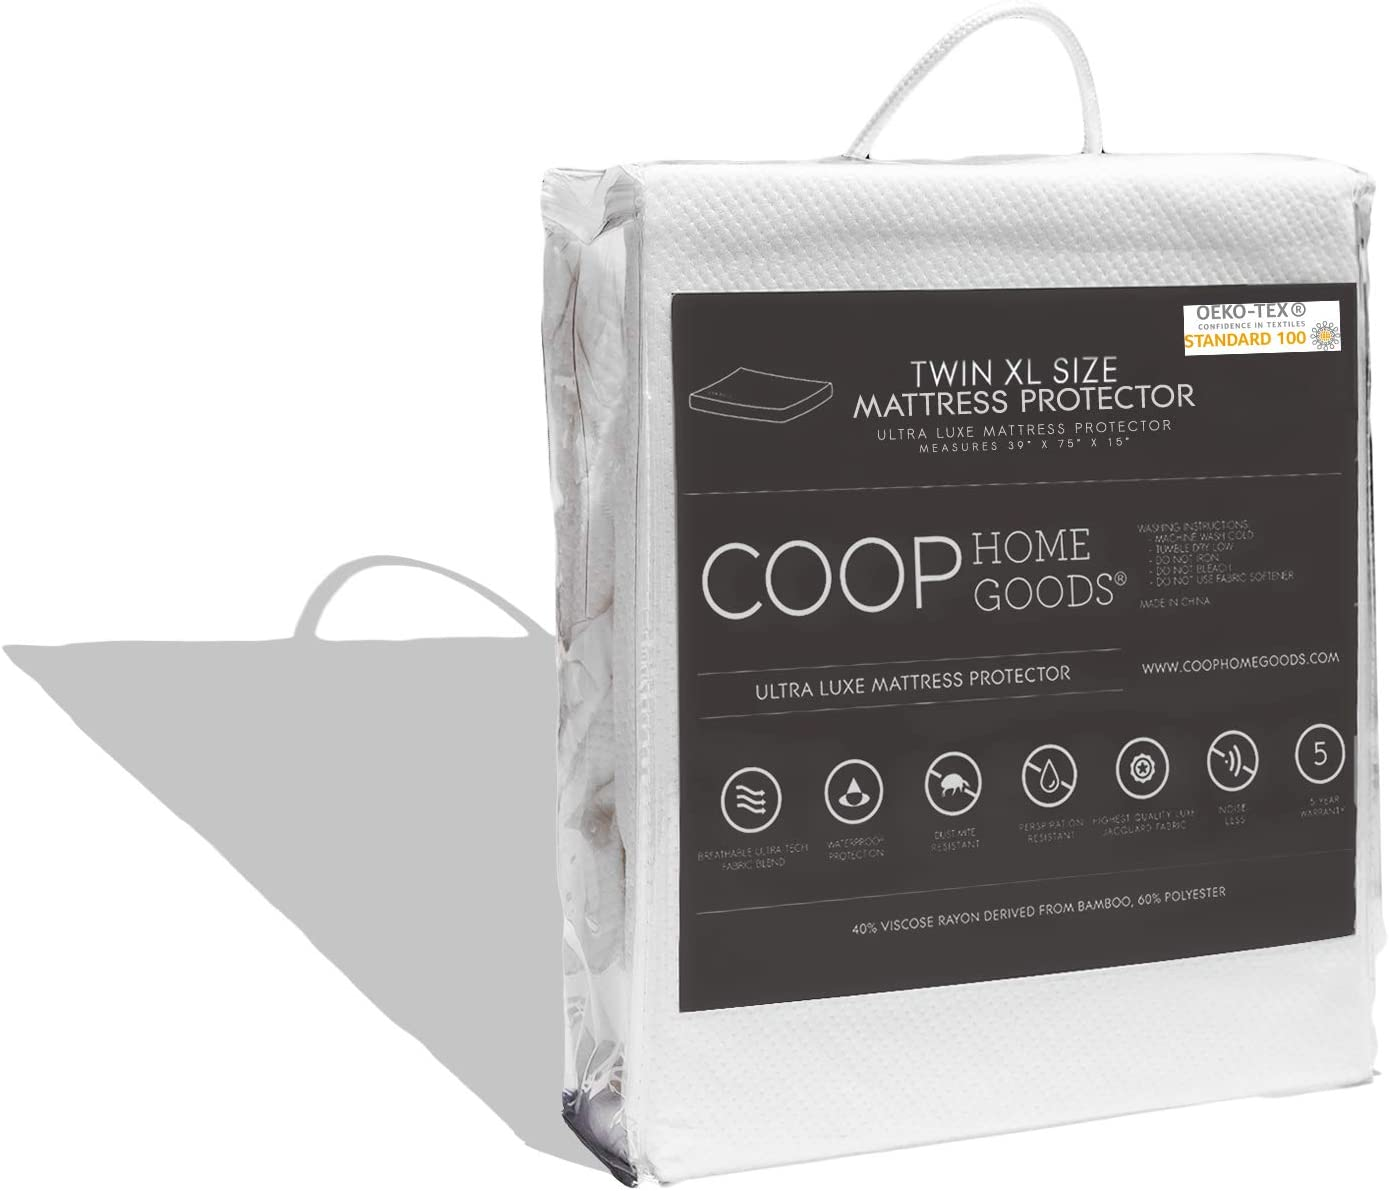 COOP HOME GOODS - Mattress Protector - Waterproof and Hypoallergenic - Soft and Noiseless Lulltra Fabric from Bamboo Derived Rayon - Protection Against fluids - Oeko-TEX Certified - Twin XL